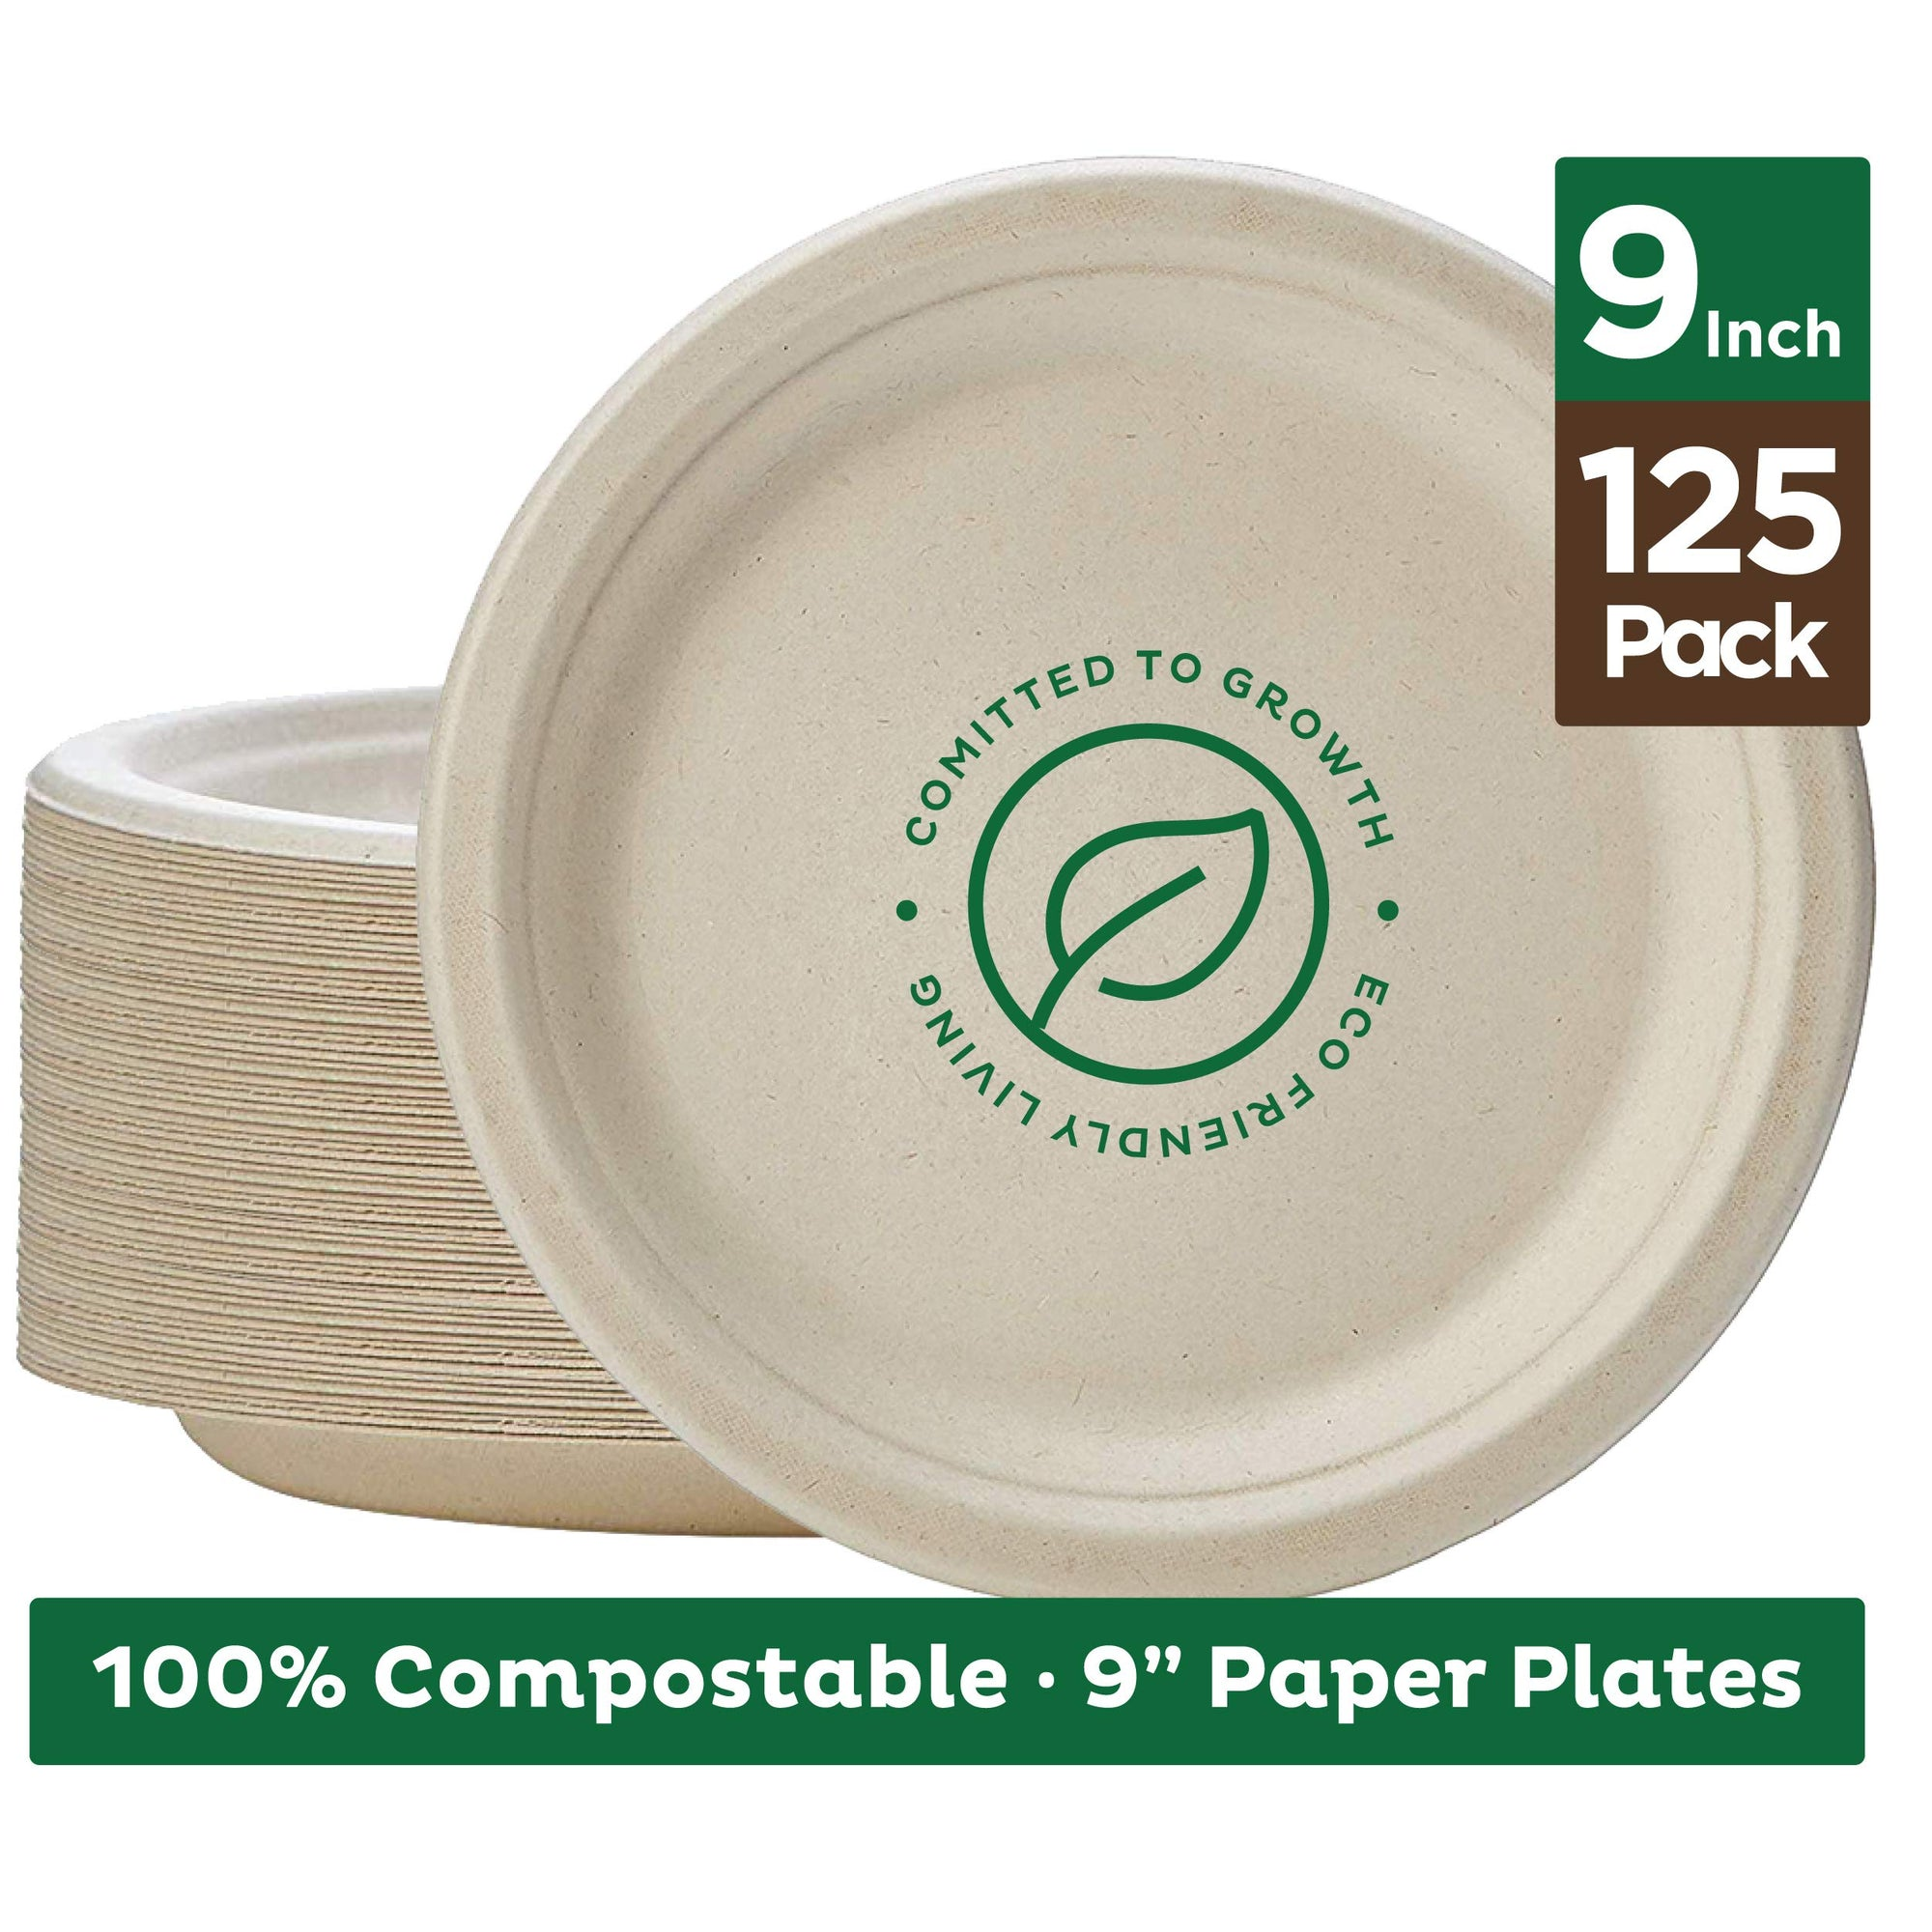 Eco-Friendly Cups, Plates, and Utensils